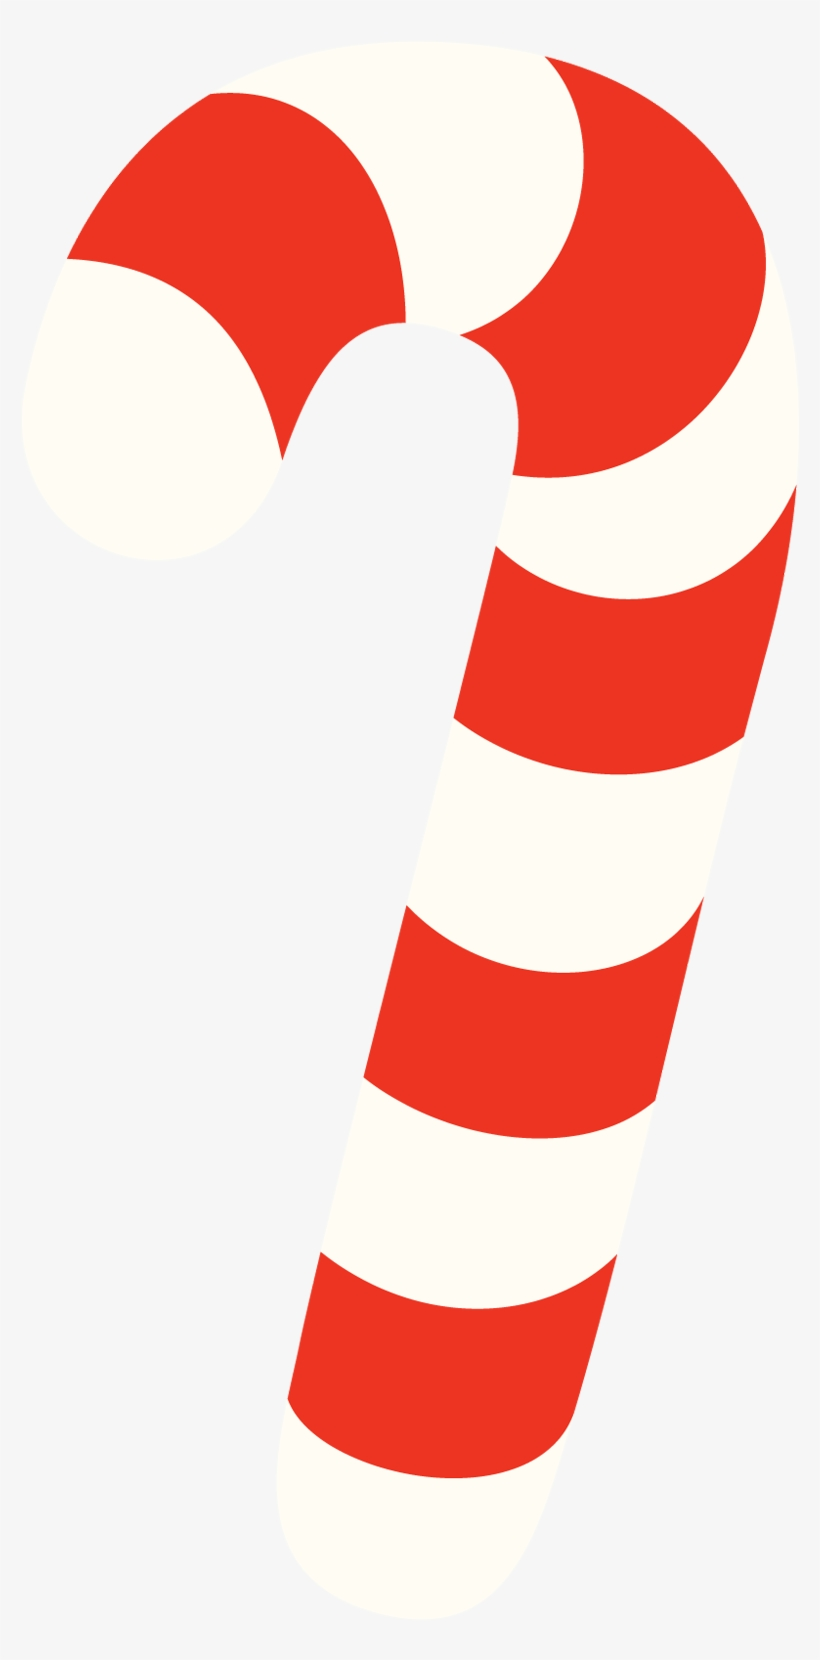 Candy Cane Free To Use Cliparts Candy Cane Vector Png Transparent Png 900x1650 Free Download On Nicepng